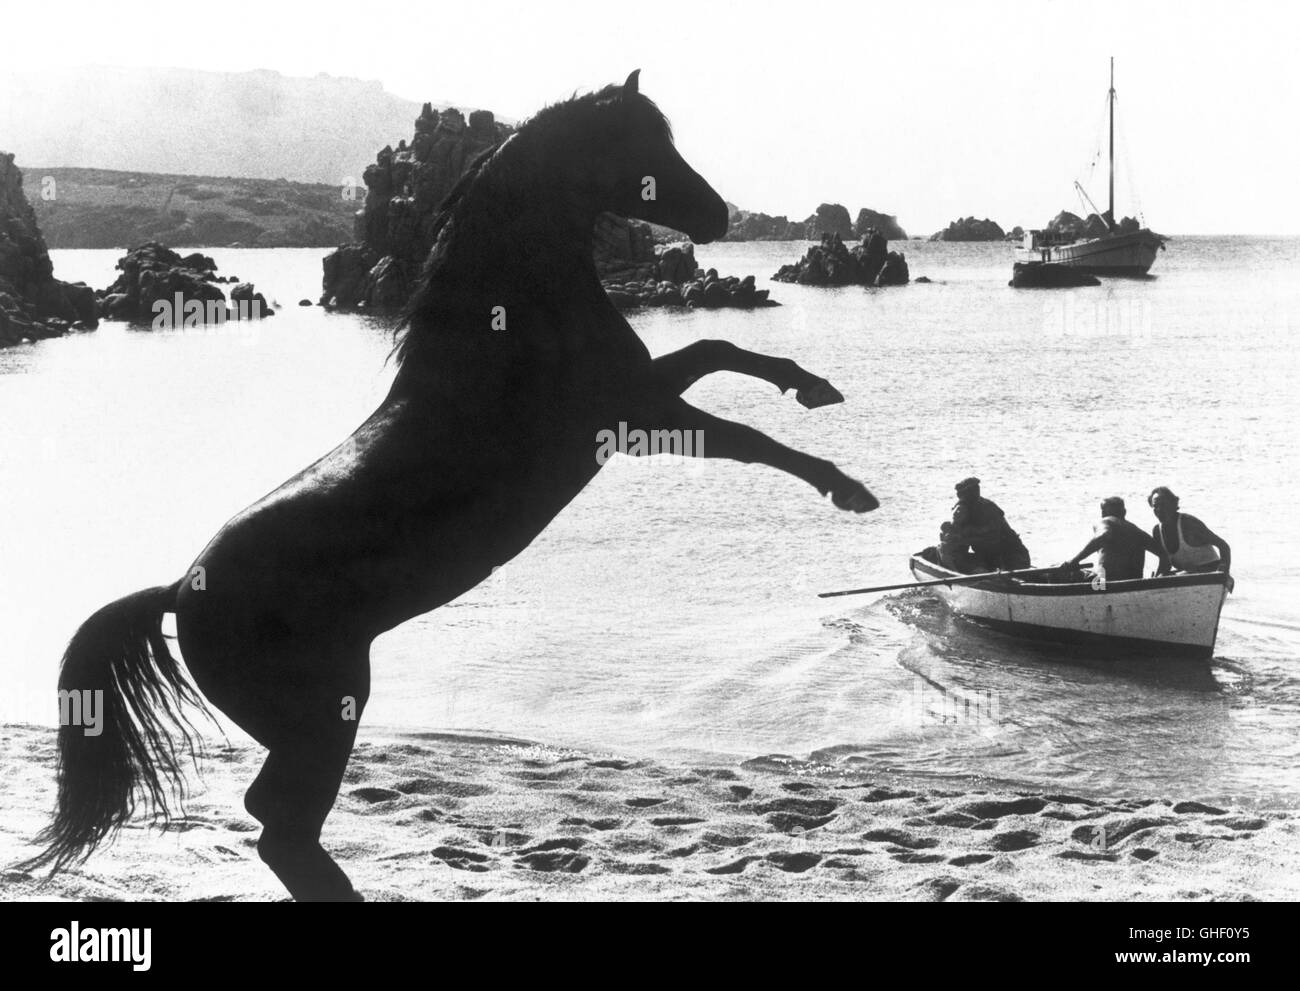 THE BLACK STALLION USA 1979 Carroll Ballard Rearing angrily on the beach, The Black expresses his dismay at having - Stock Image